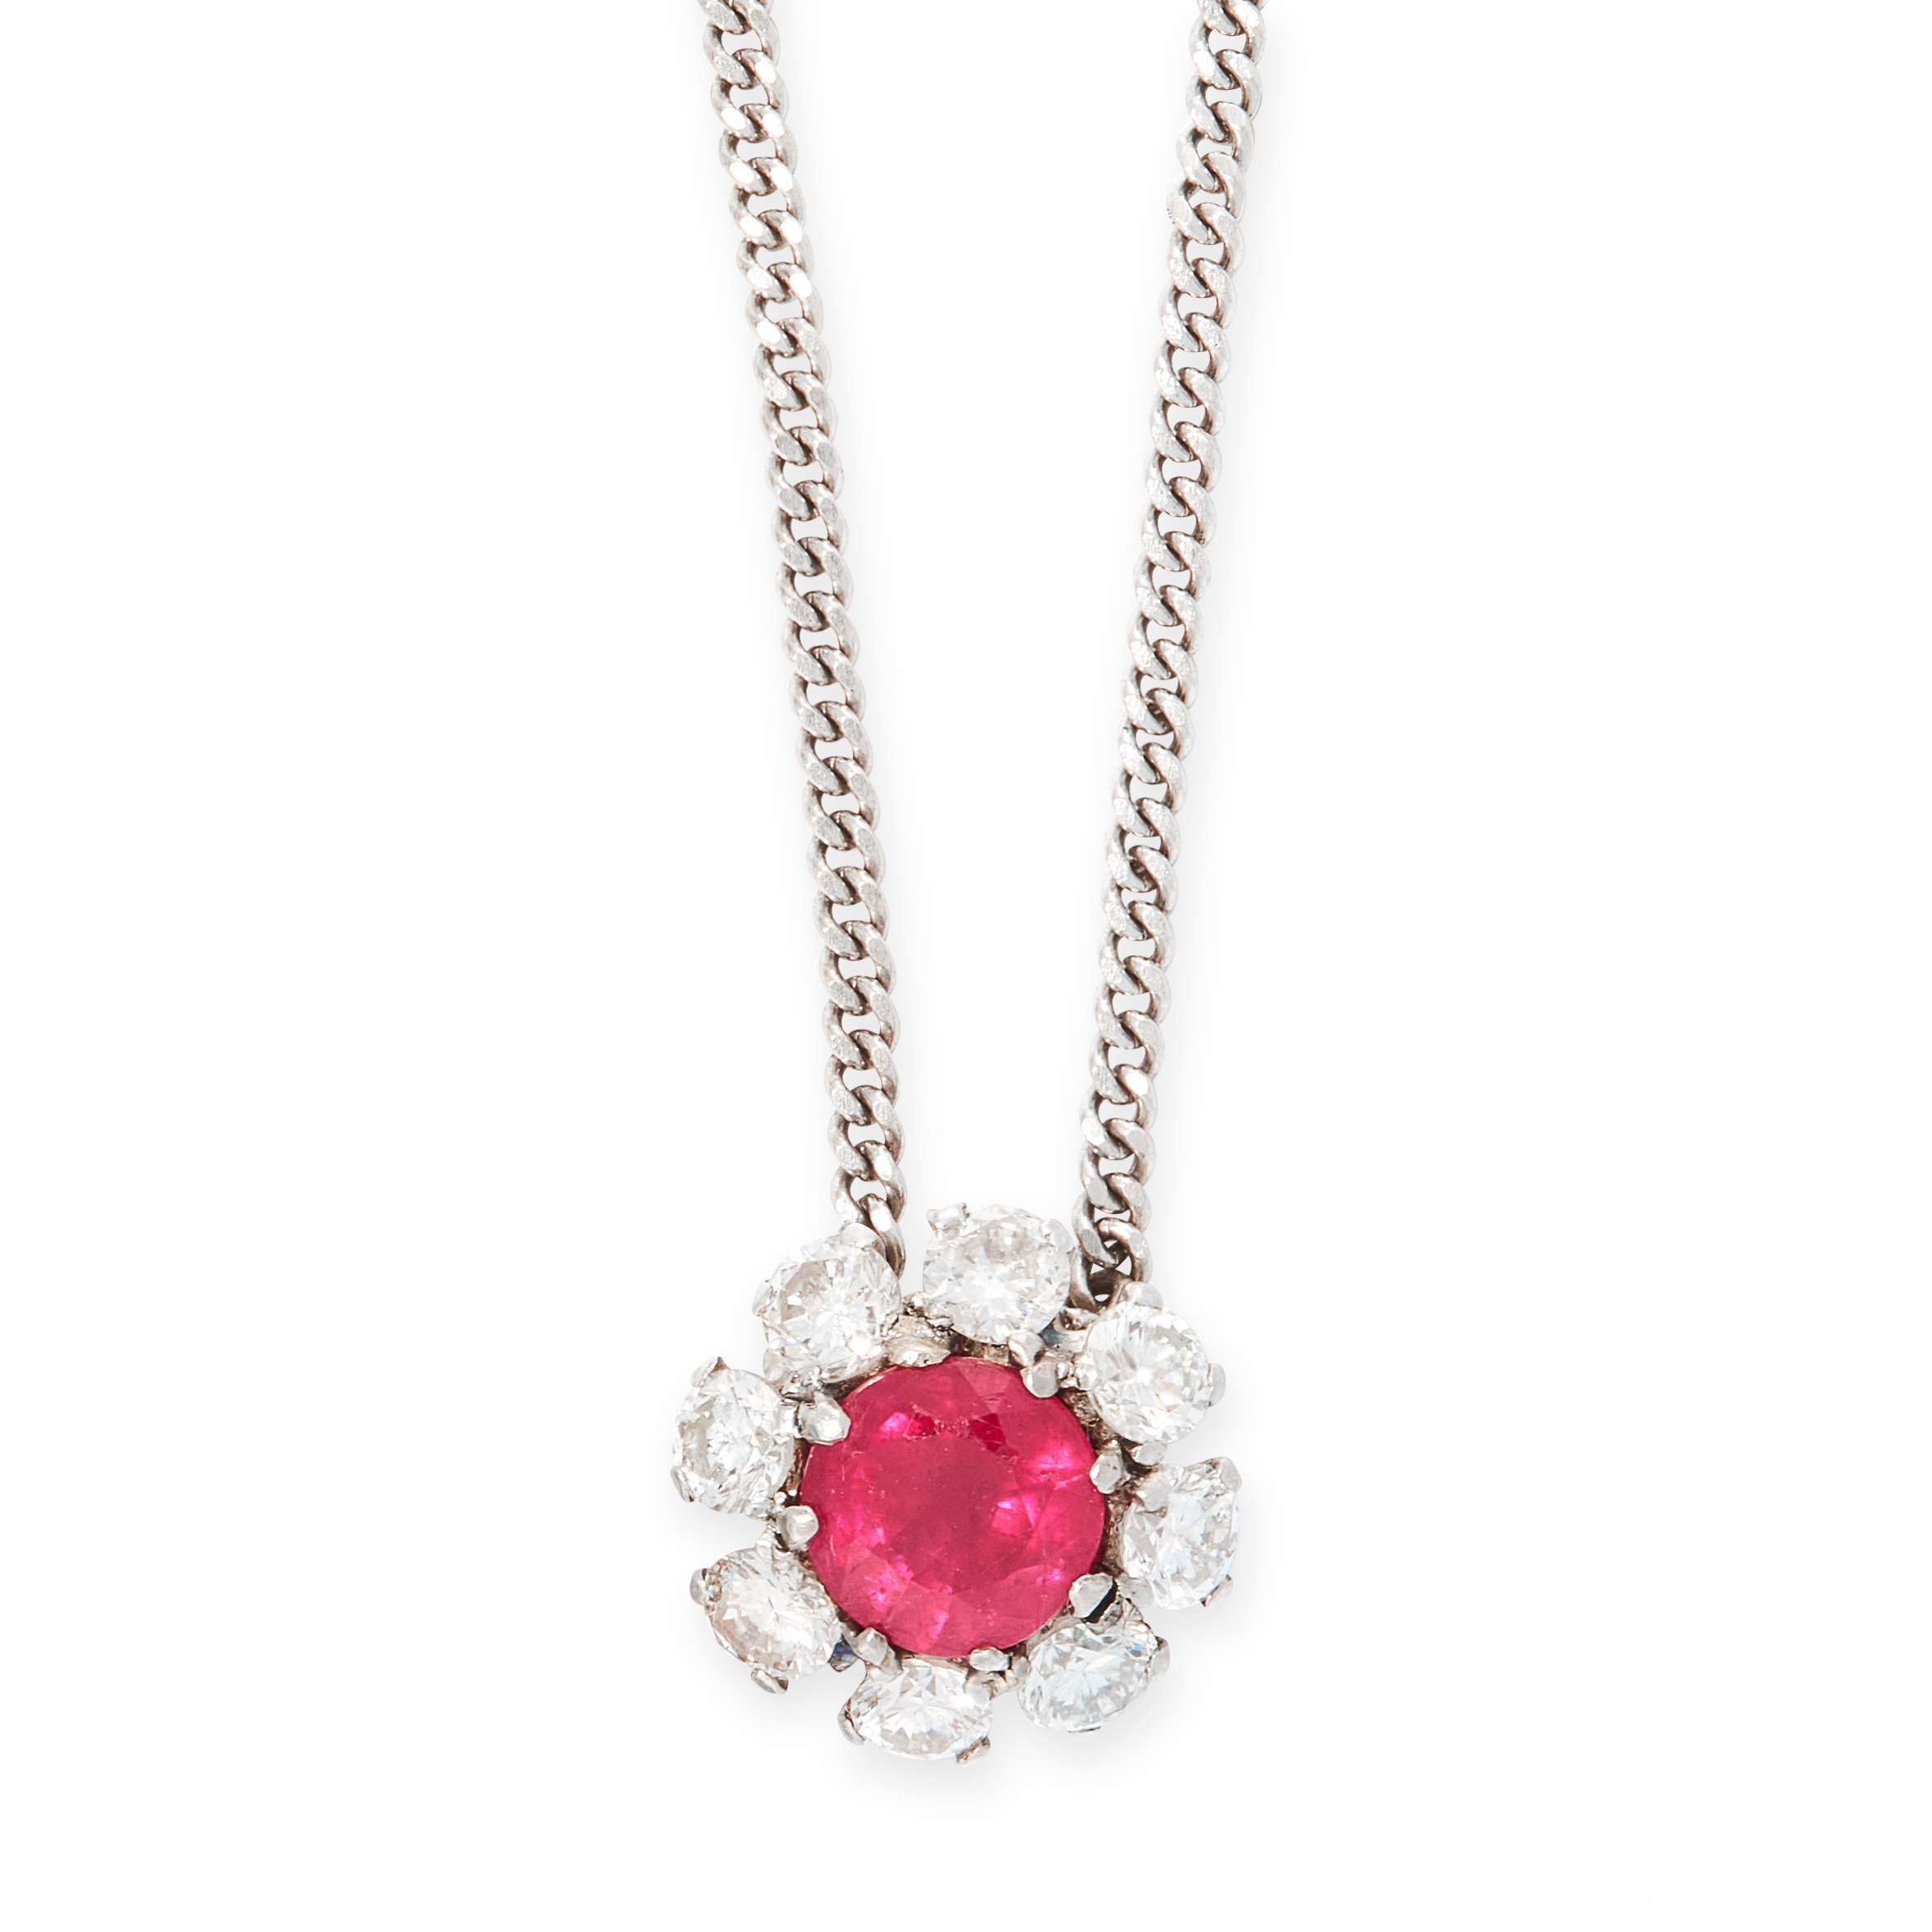 RUBY AND DIAMOND PENDANT NECKLACE set with a round cut ruby of 1.22 carats within a border of